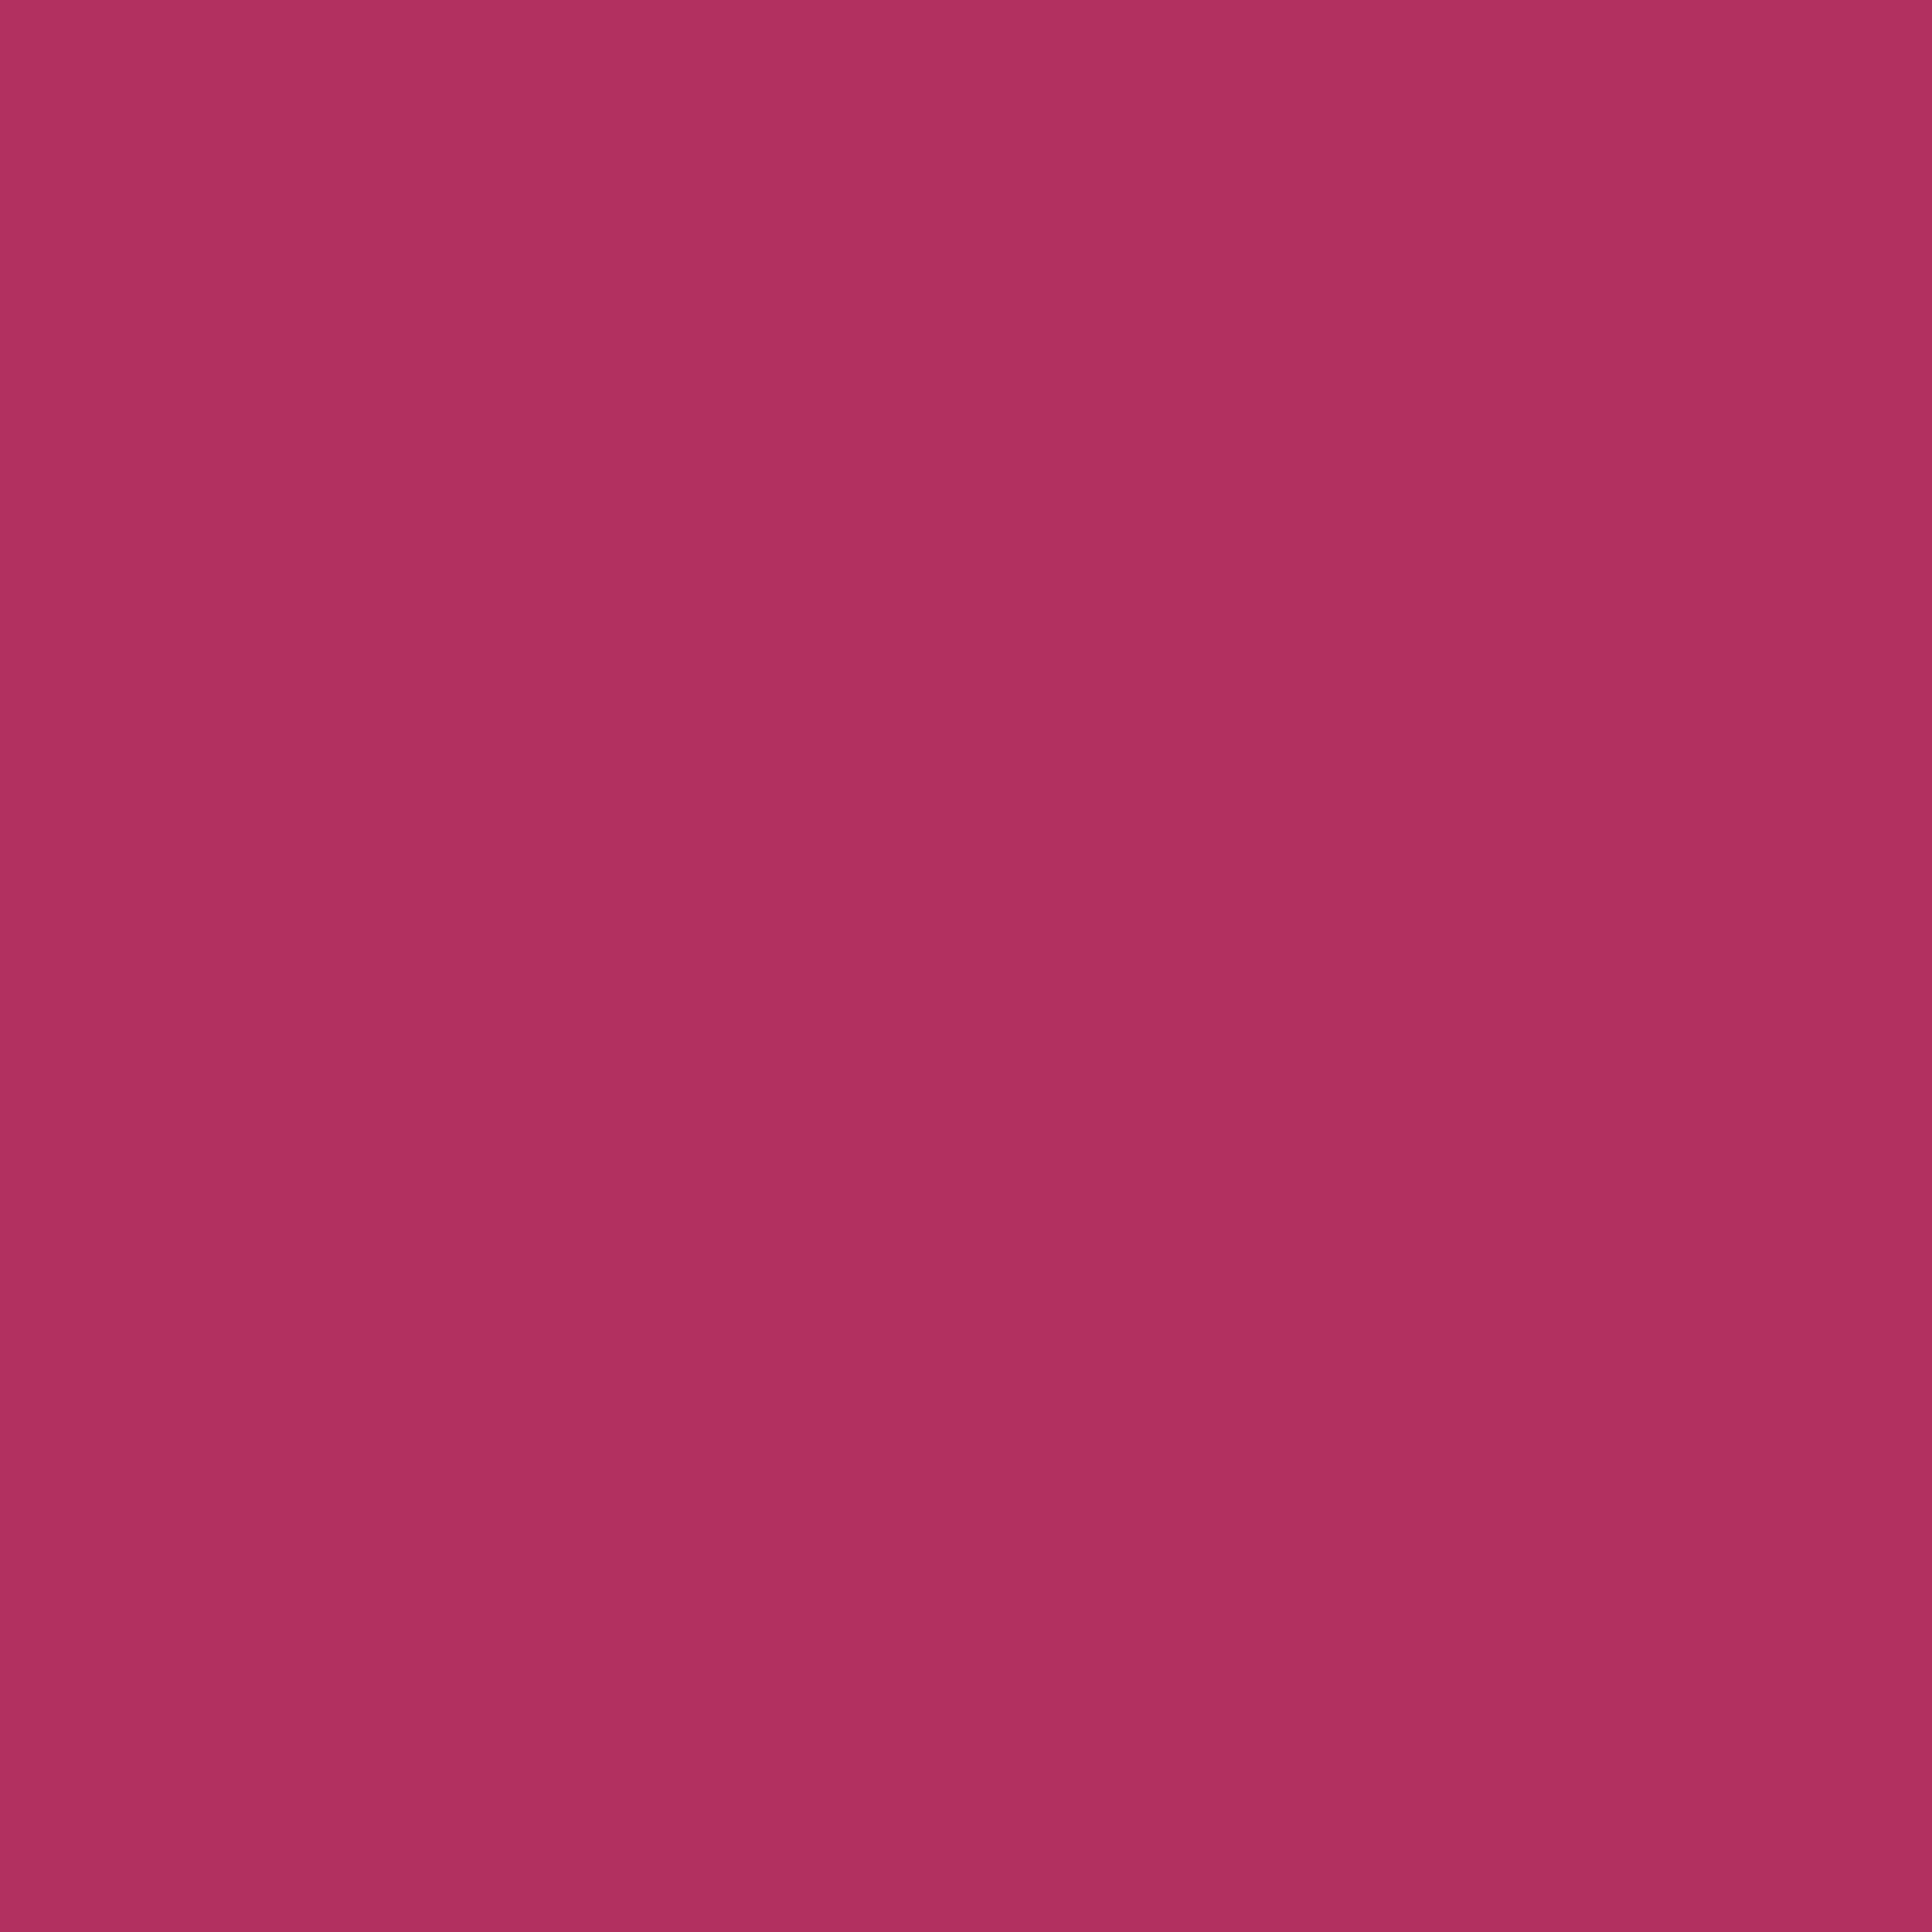 3600x3600 Maroon X11 Gui Solid Color Background